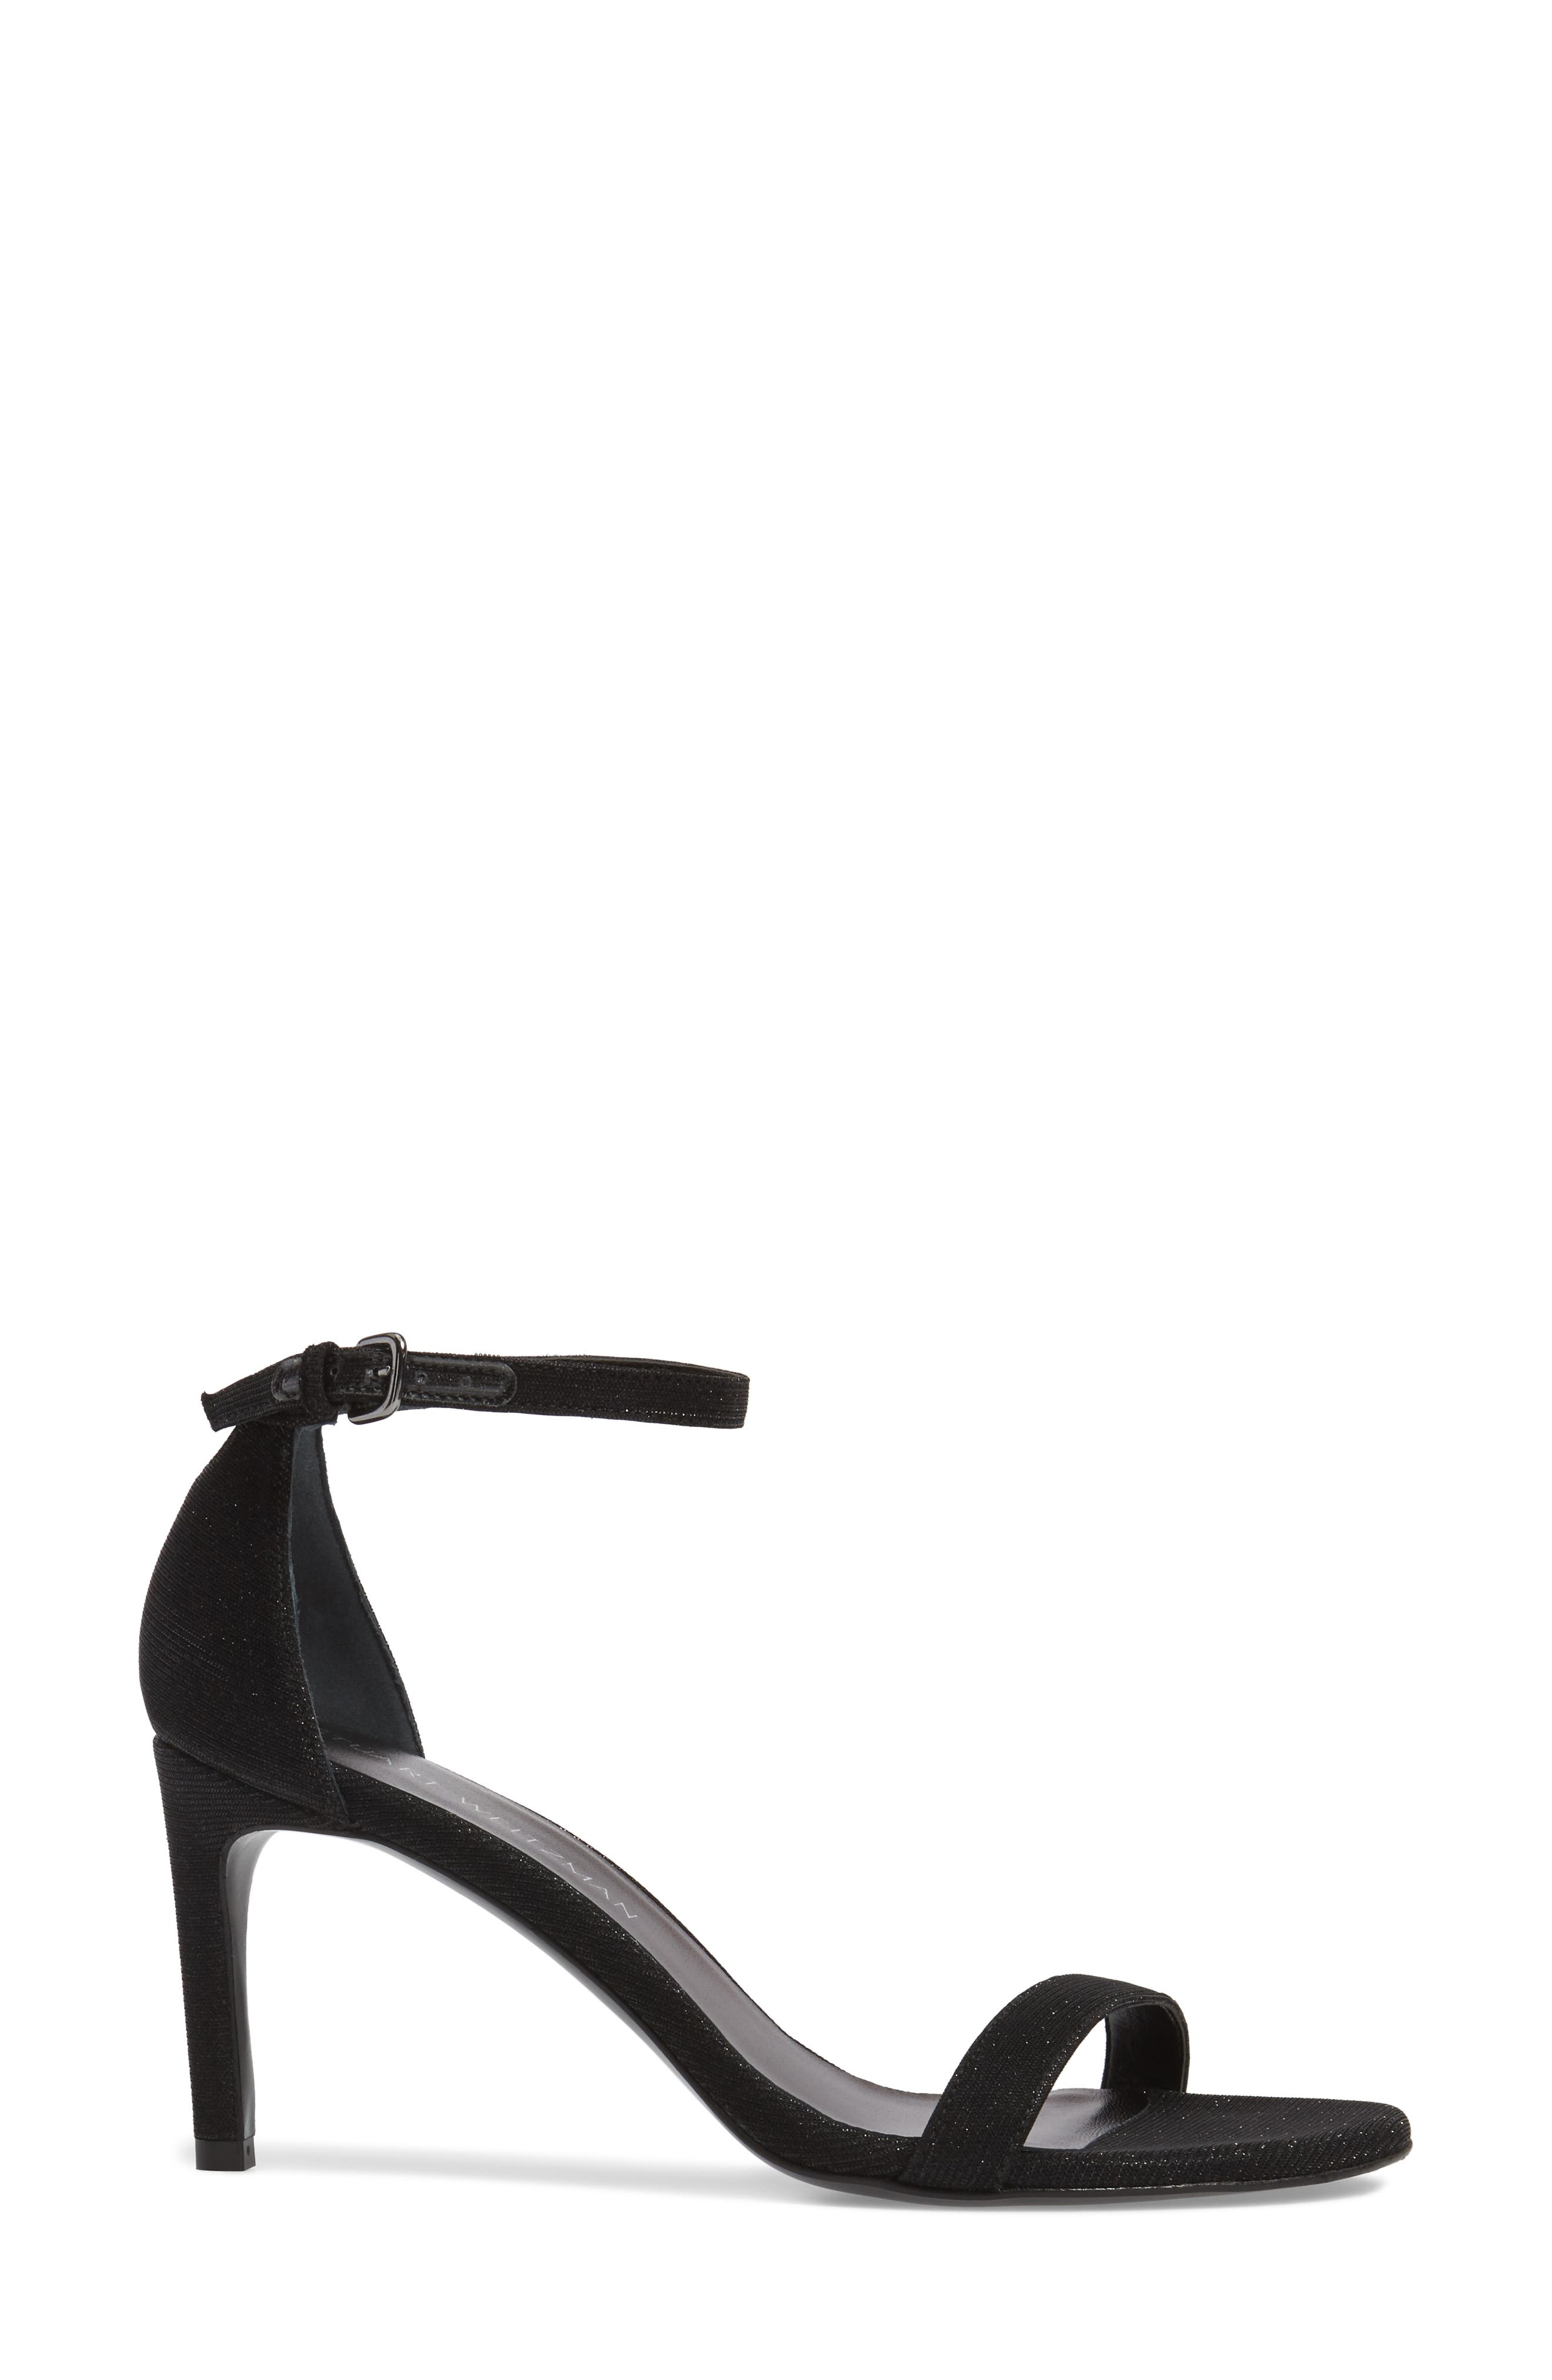 'Nunaked' Leather Ankle Strap Sandal,                             Alternate thumbnail 4, color,                             Nero Nocturn Nappa